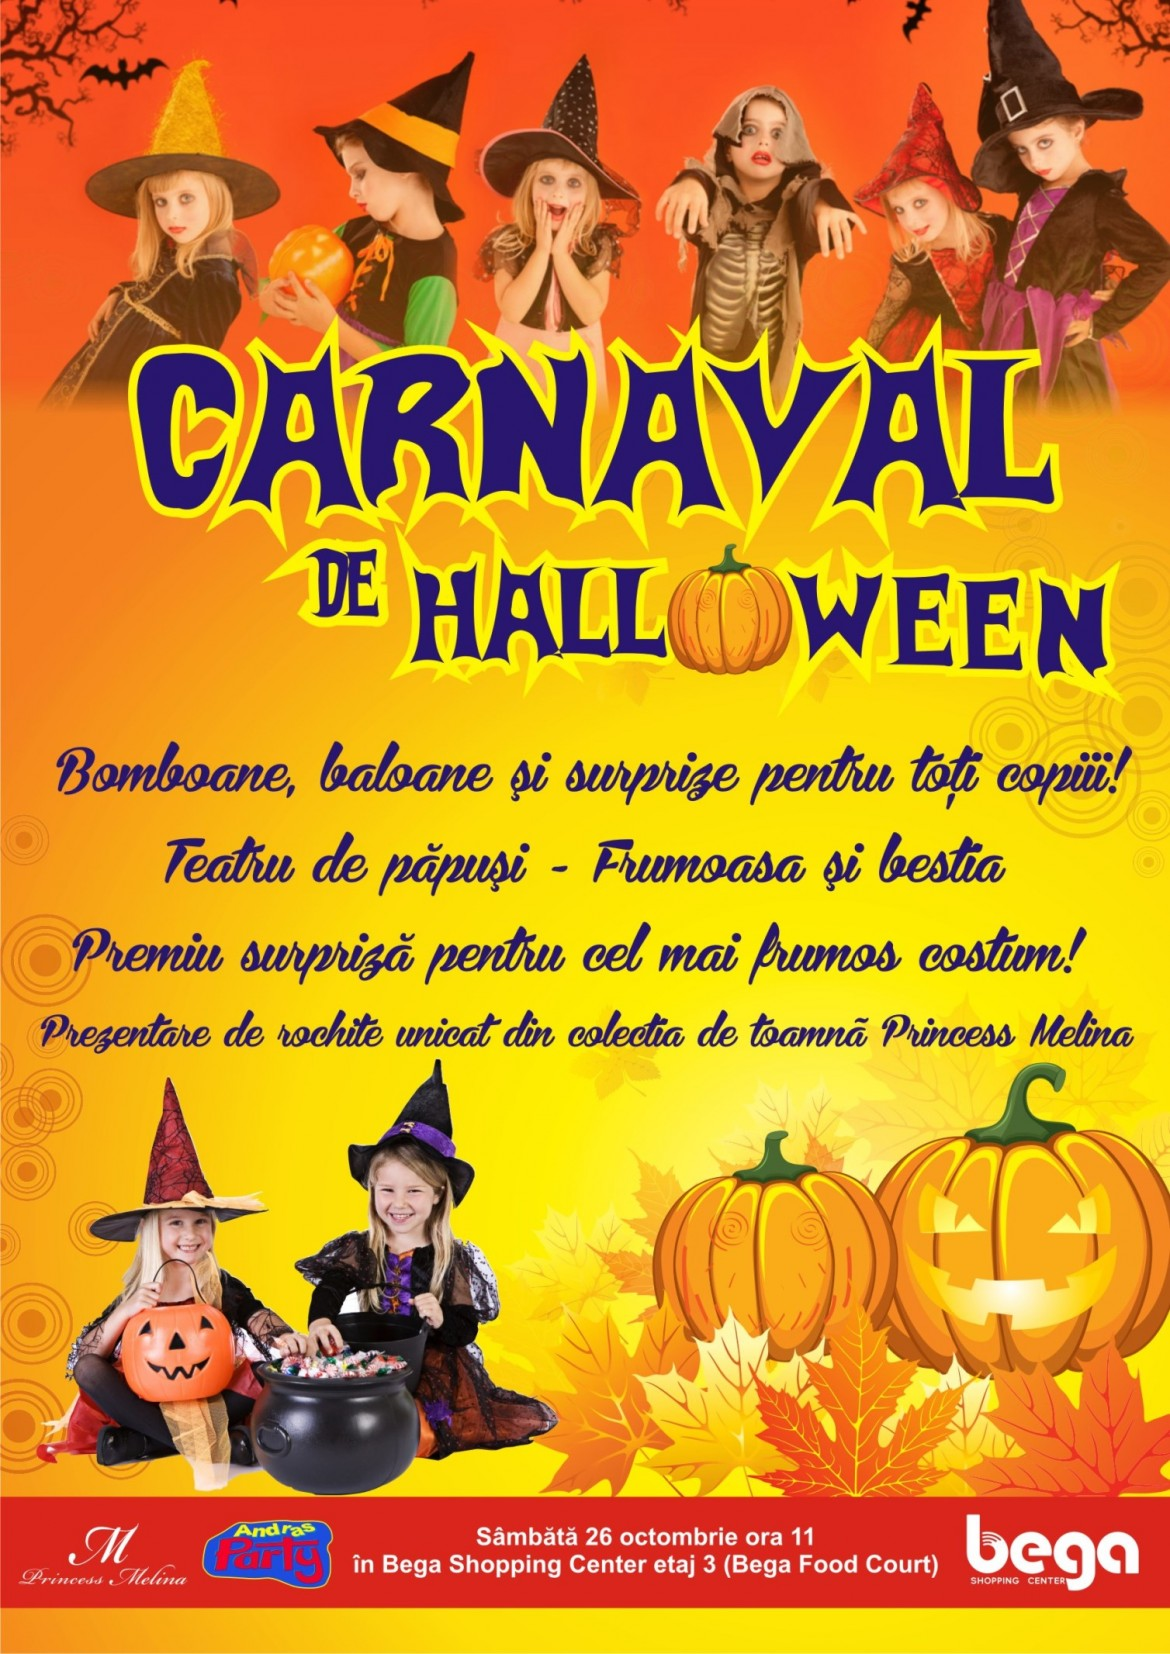 Carnaval de halloween la Bega Shopping Center 2013